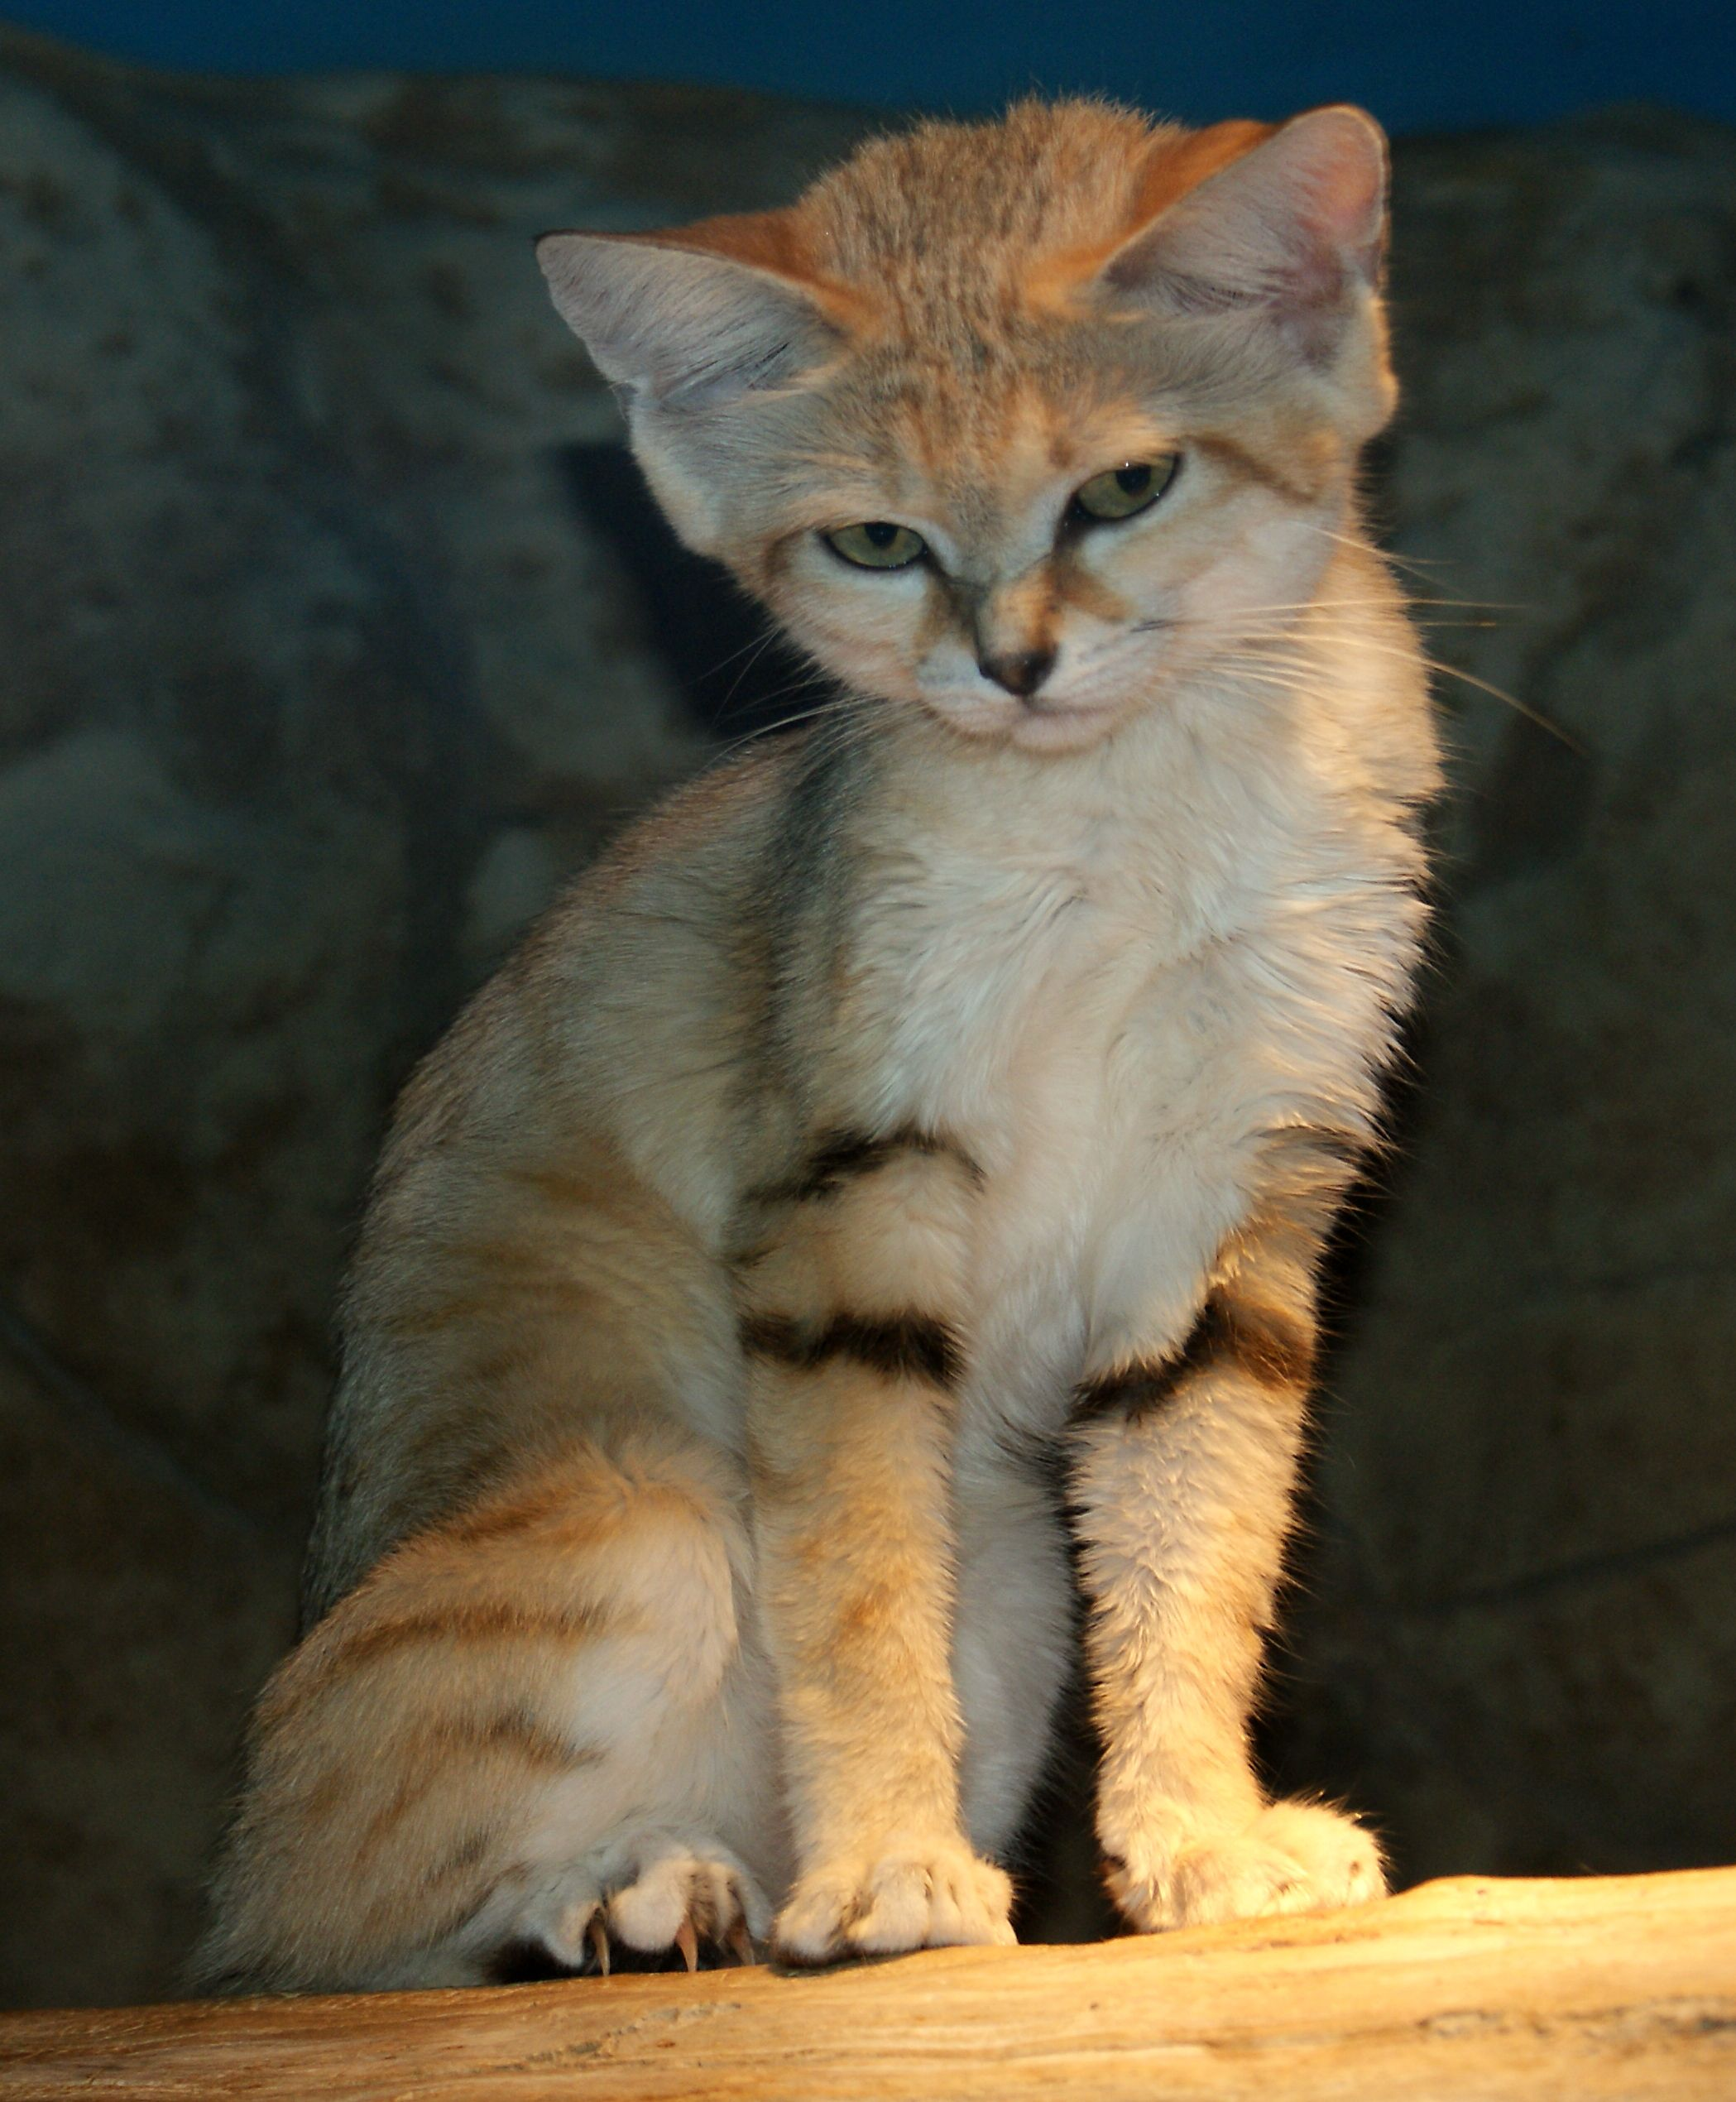 Pin by Lulu ️ on Did you know? Sand cat, Little kittens